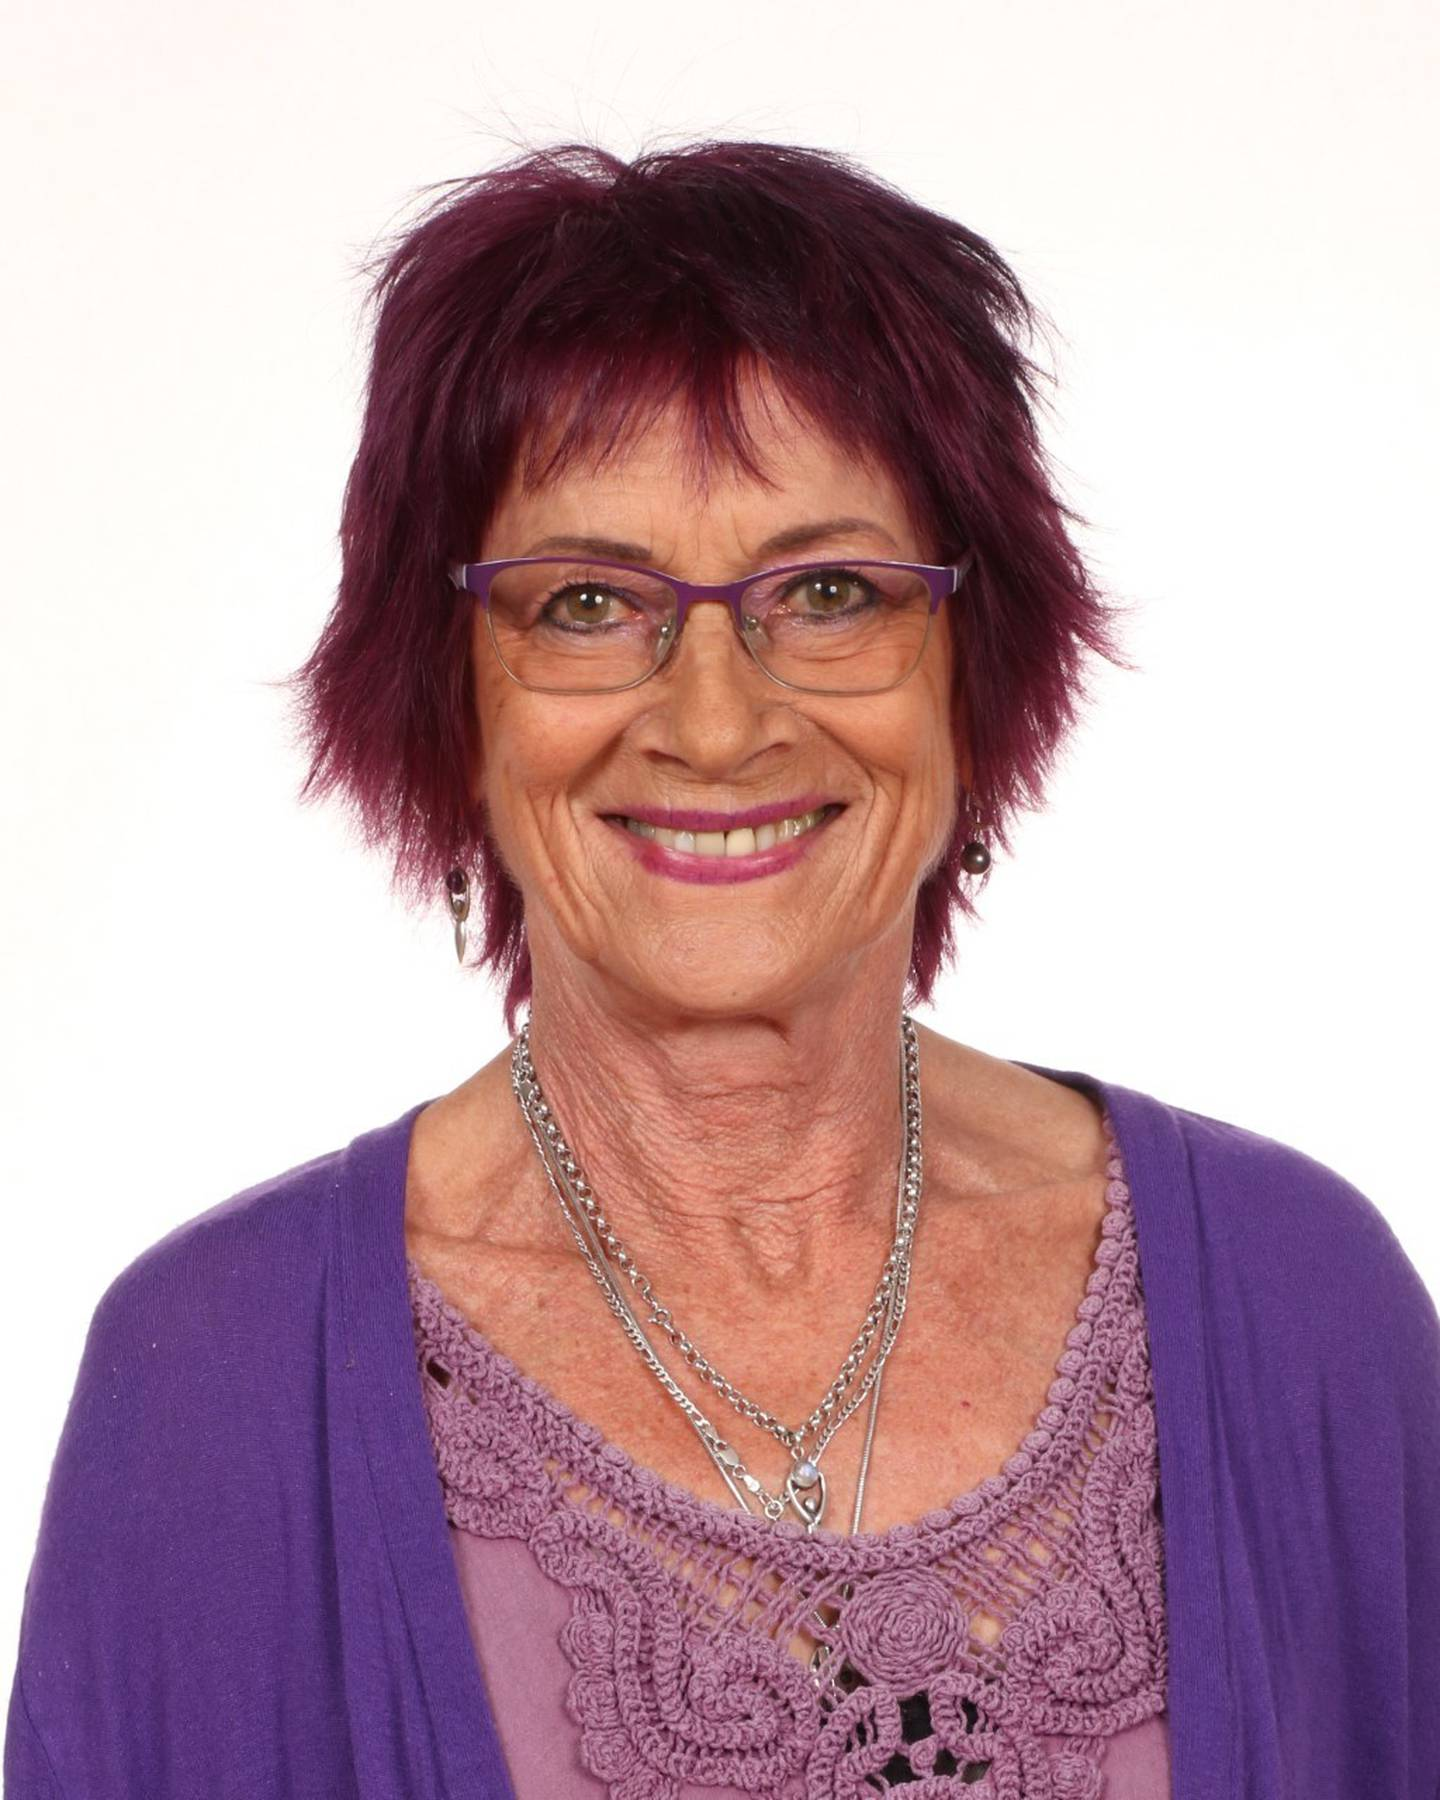 Purple-loving Westmere School teacher Julie Ann Hamilton, 67, was remembered by hundreds on Saturday after her sudden passing last week. Photo / Supplied